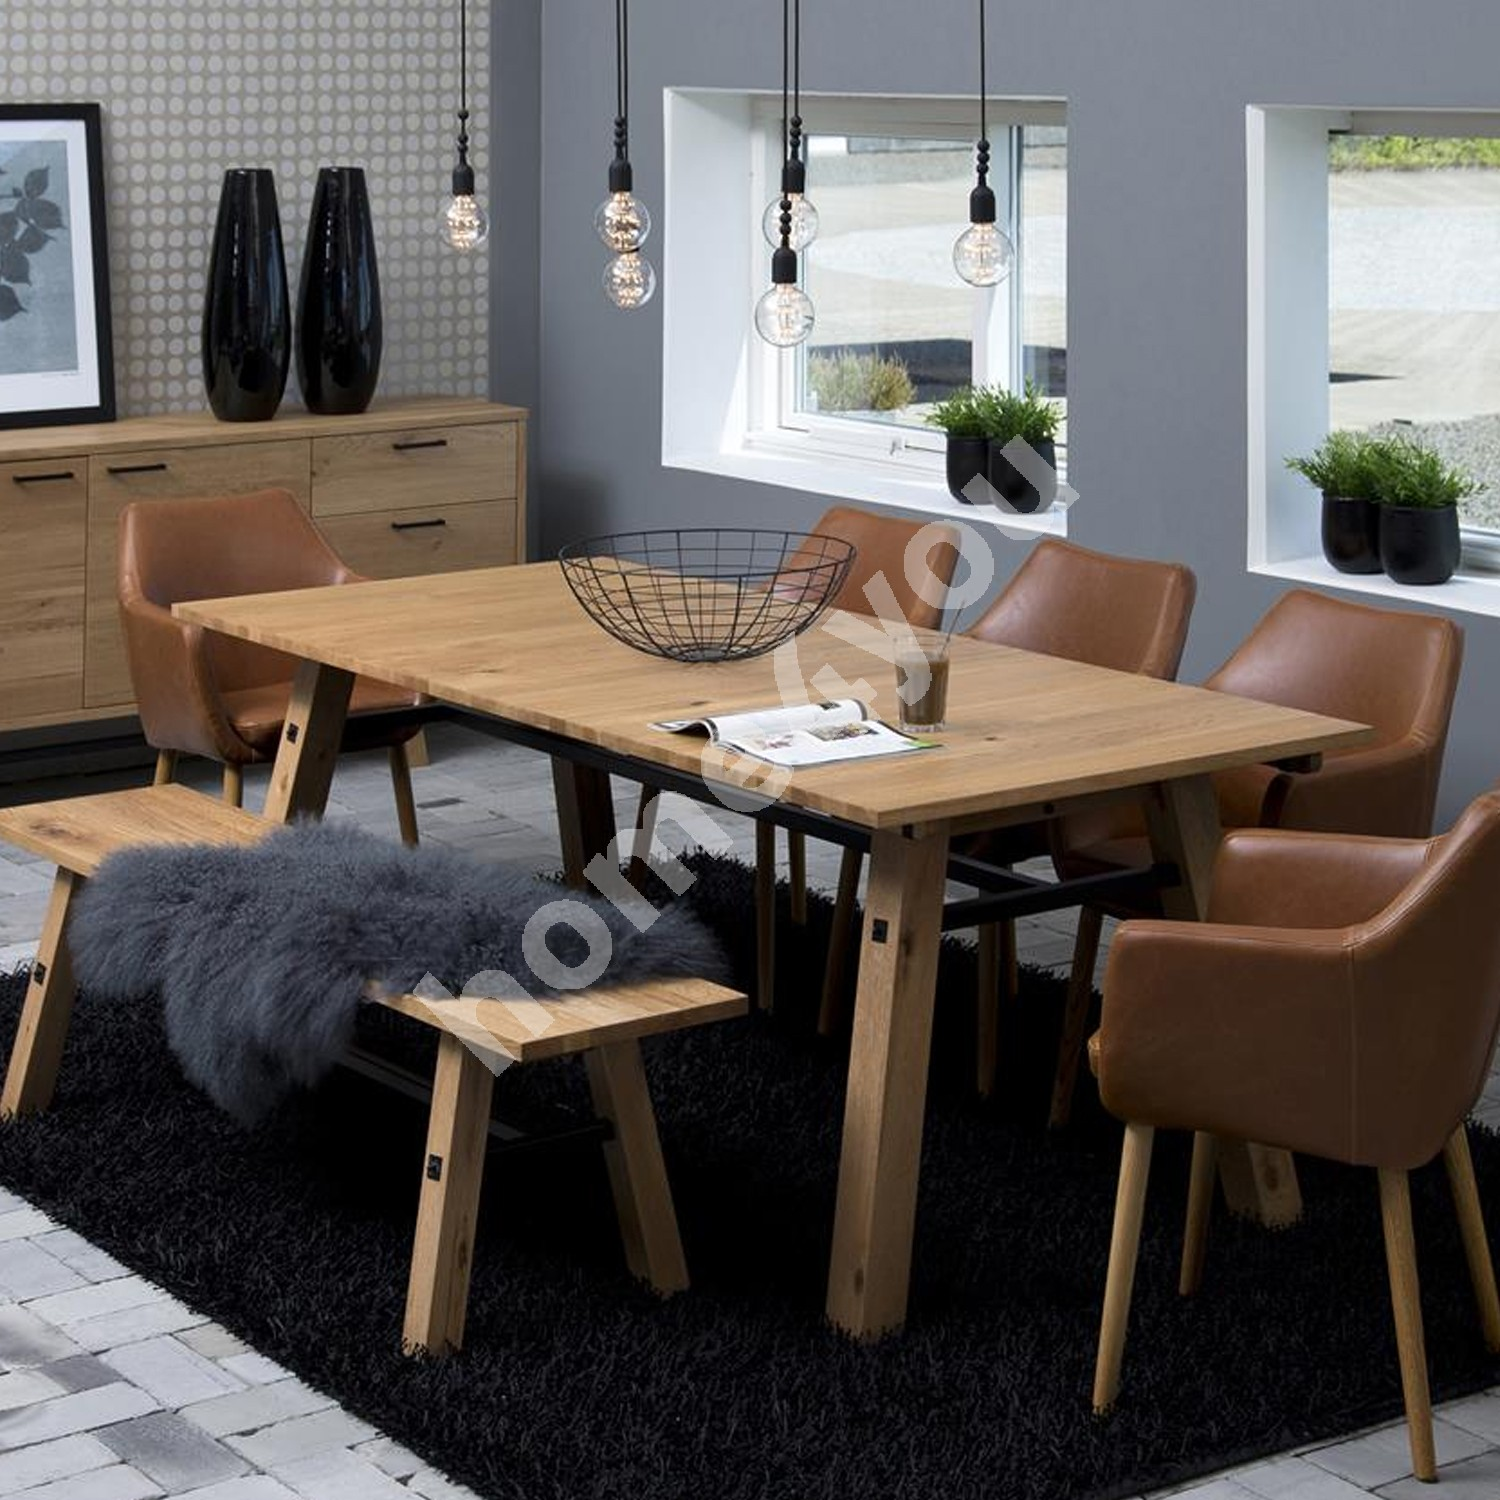 Dining set STOCKHOLM with 6-chairs (AC55607) 210x95xH75cm, wood: oak, finishing: lacquered